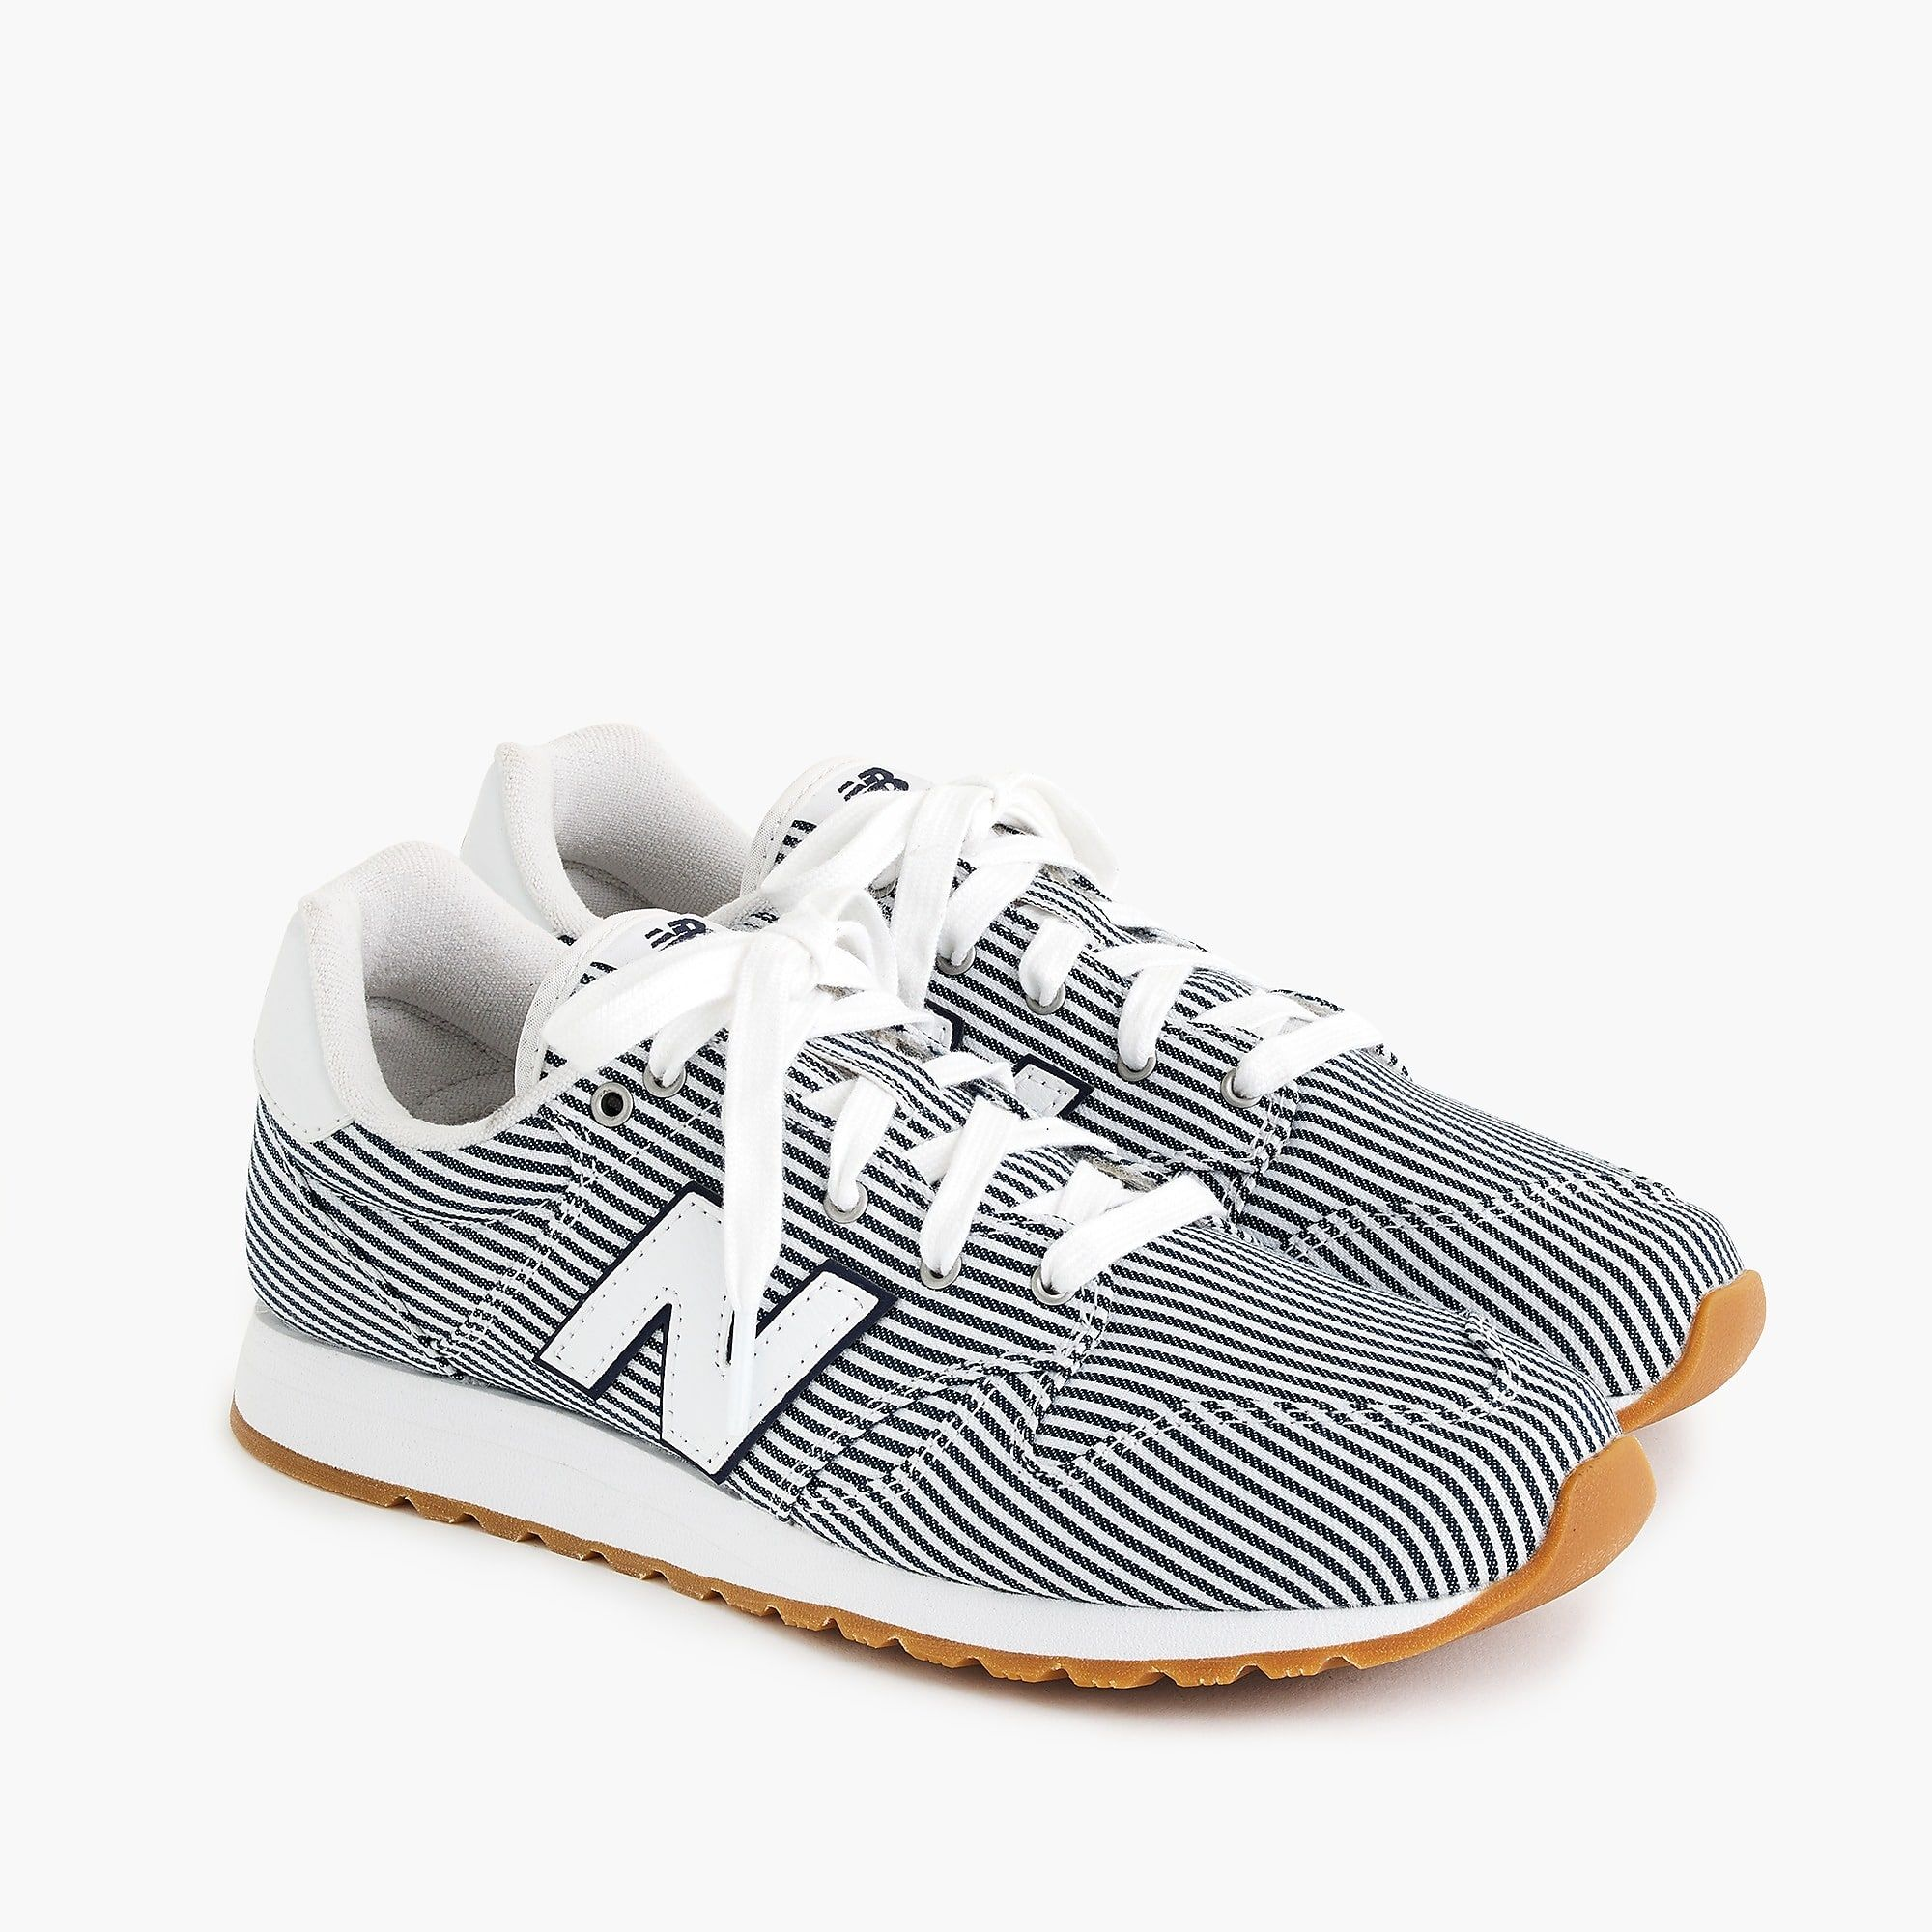 Women s New Balance for J.Crew 520 sneakers     shoes  stripes ... 776df919d